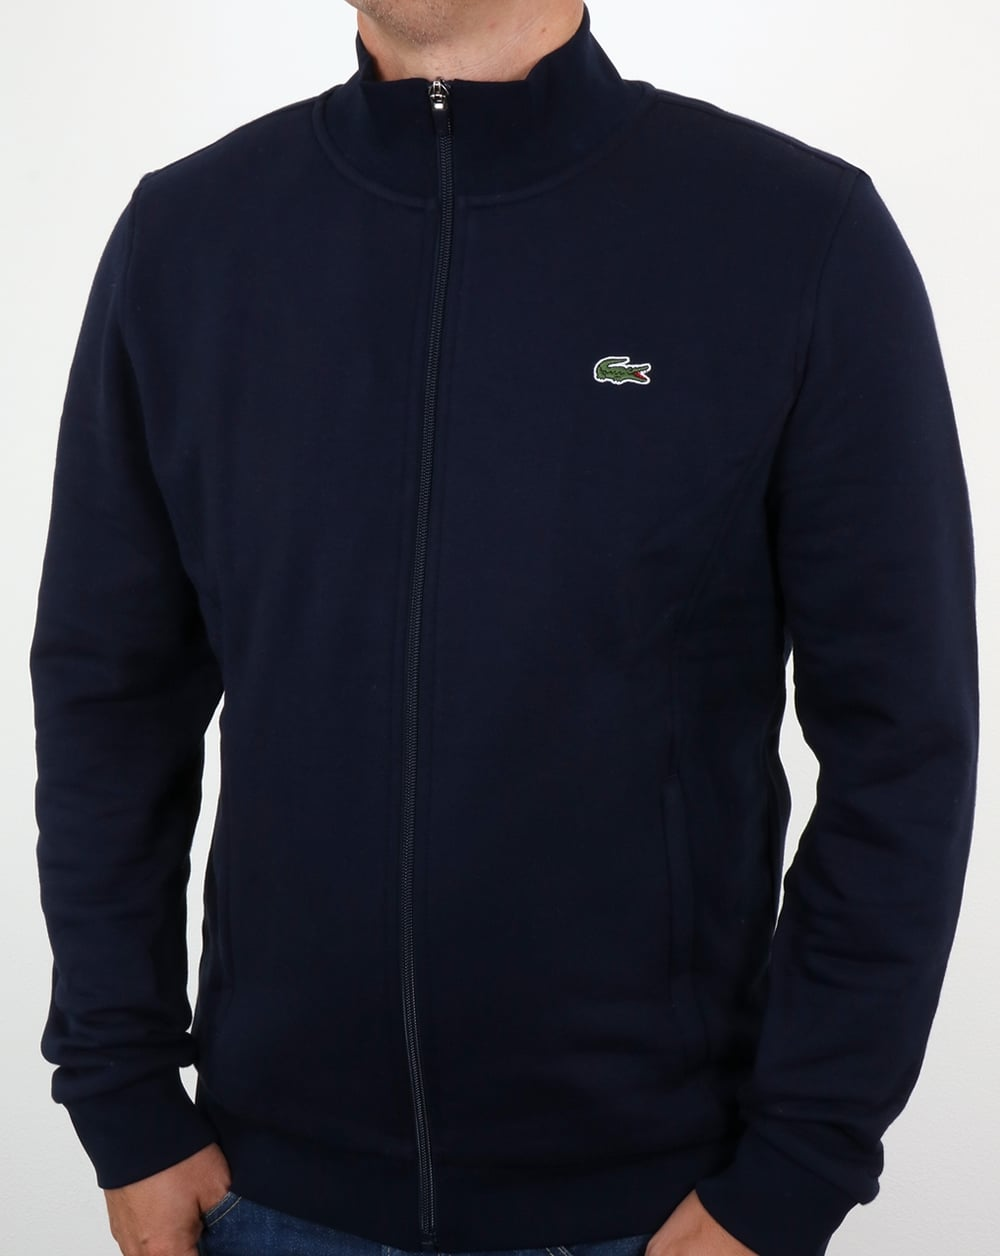 78d65fd48d6f Lacoste Lacoste Zip Up Track Top Navy